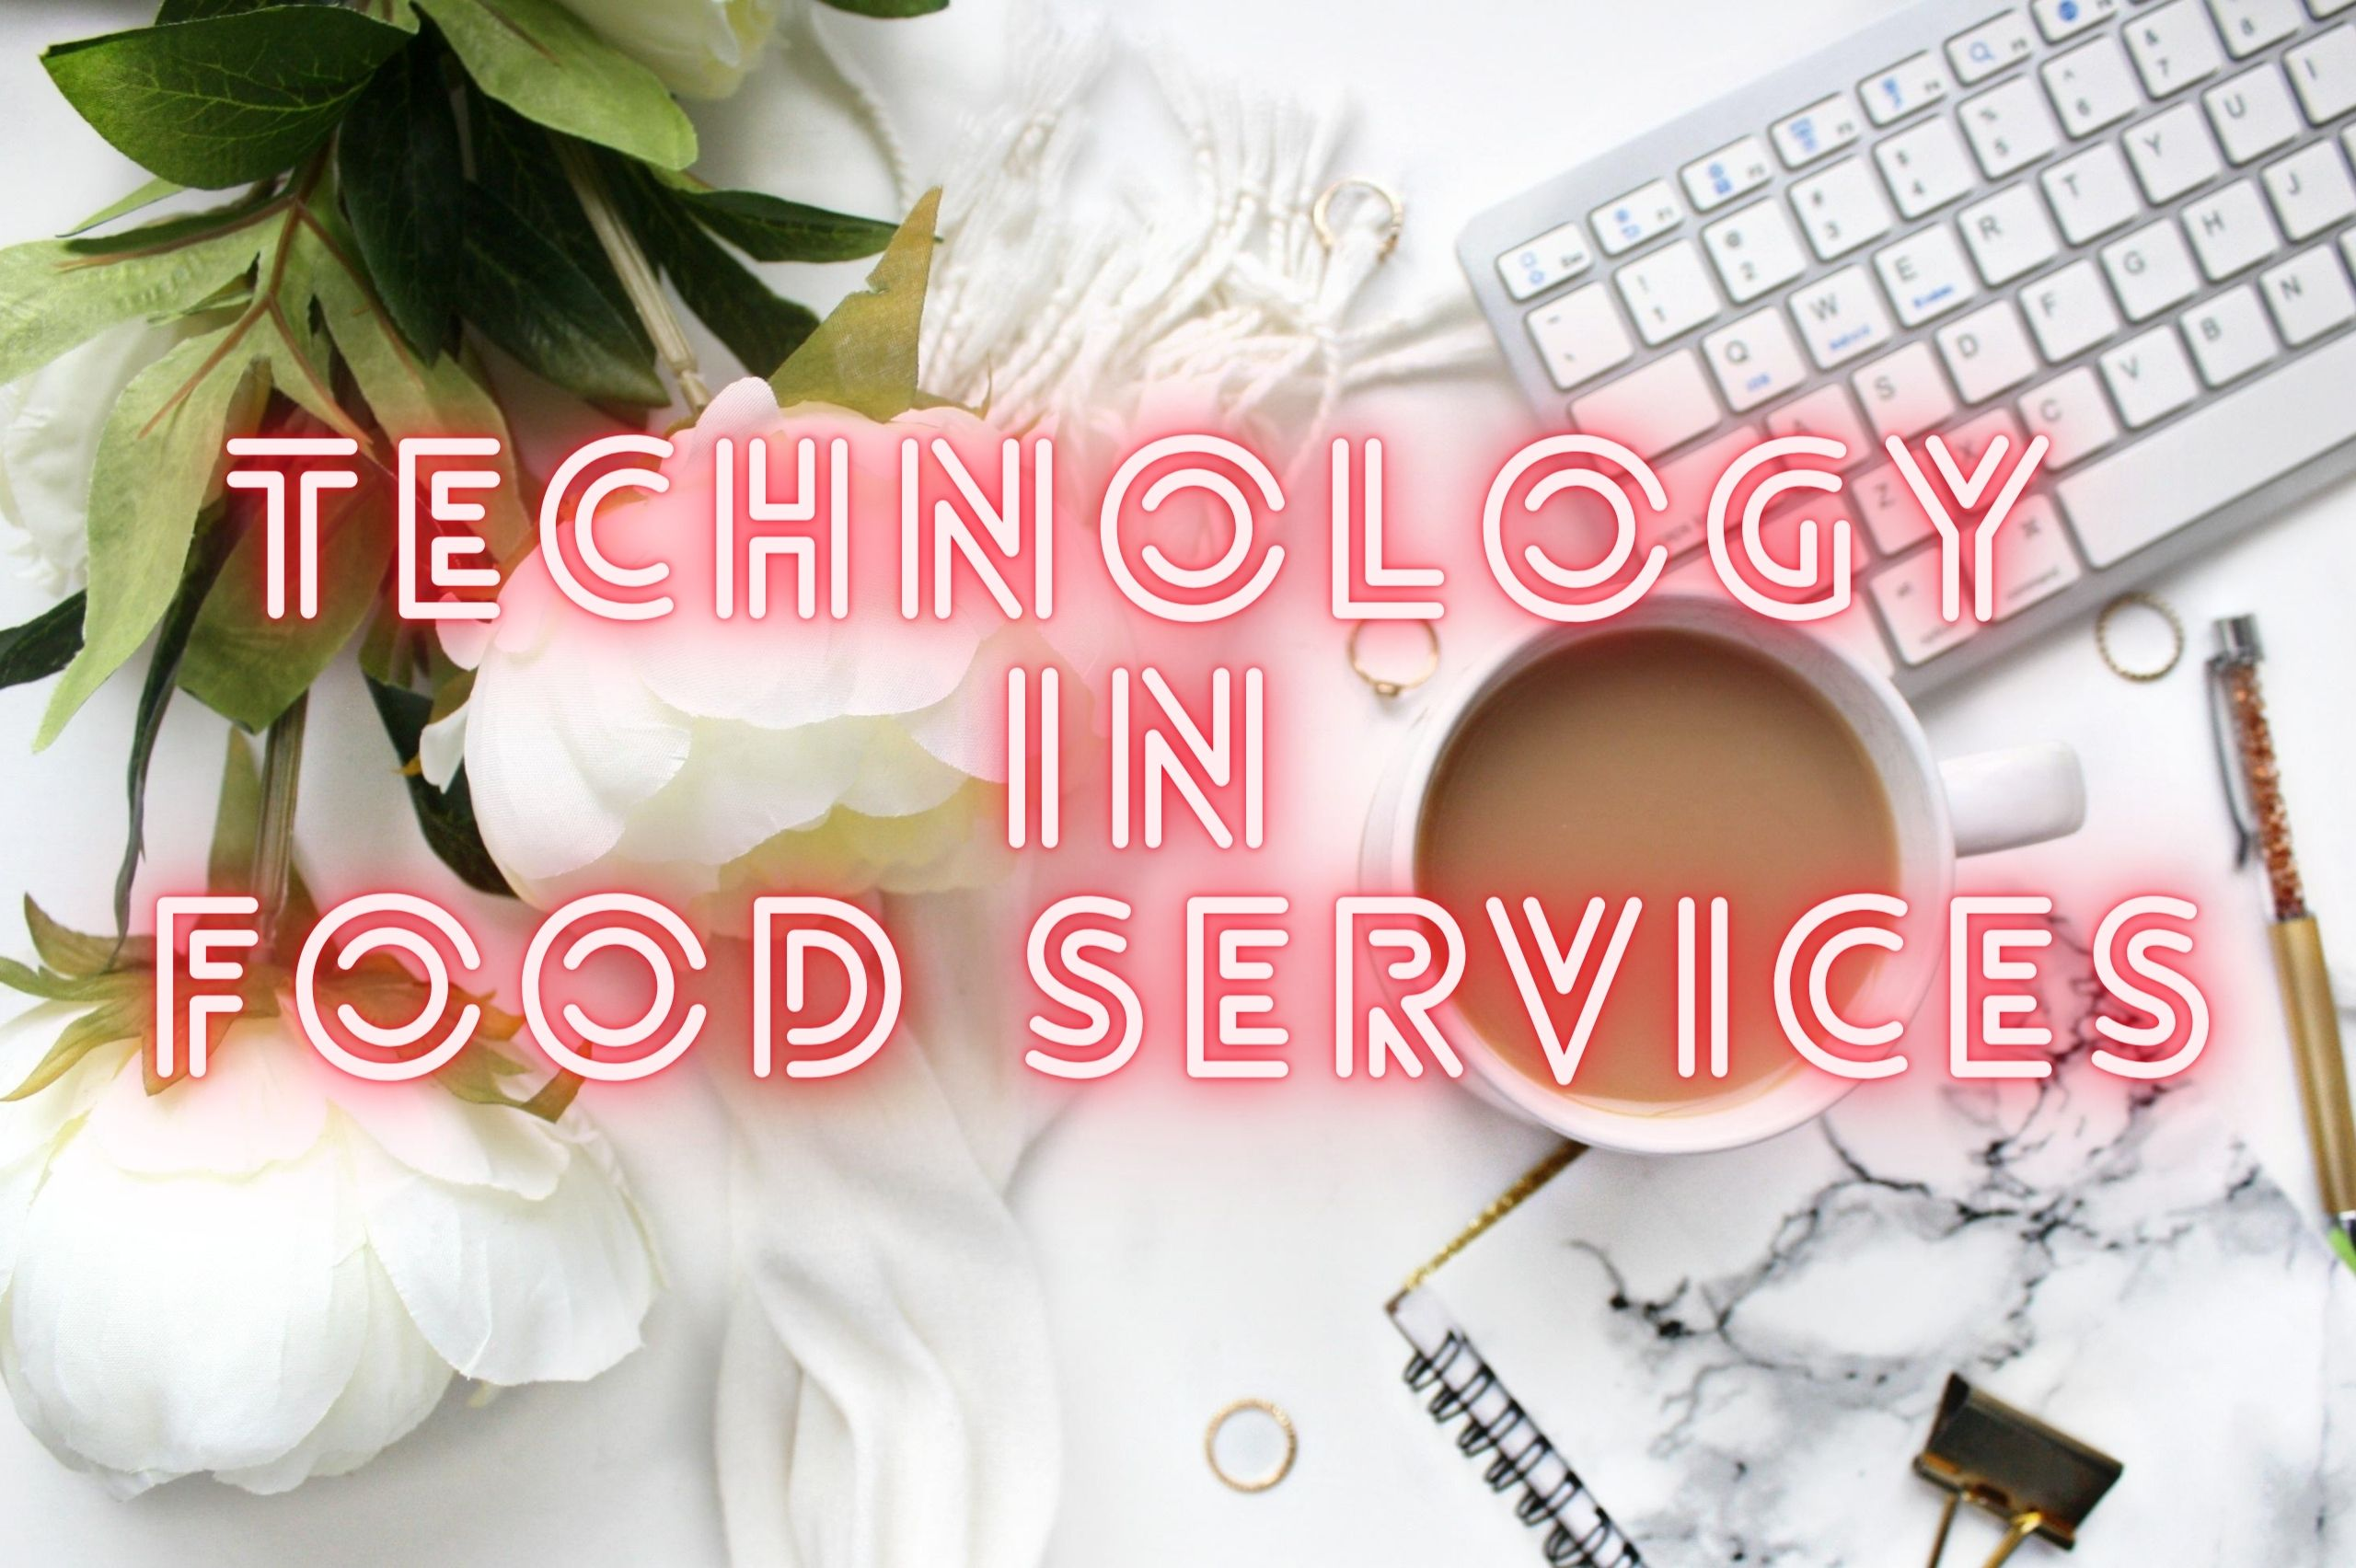 Technology in Food Services